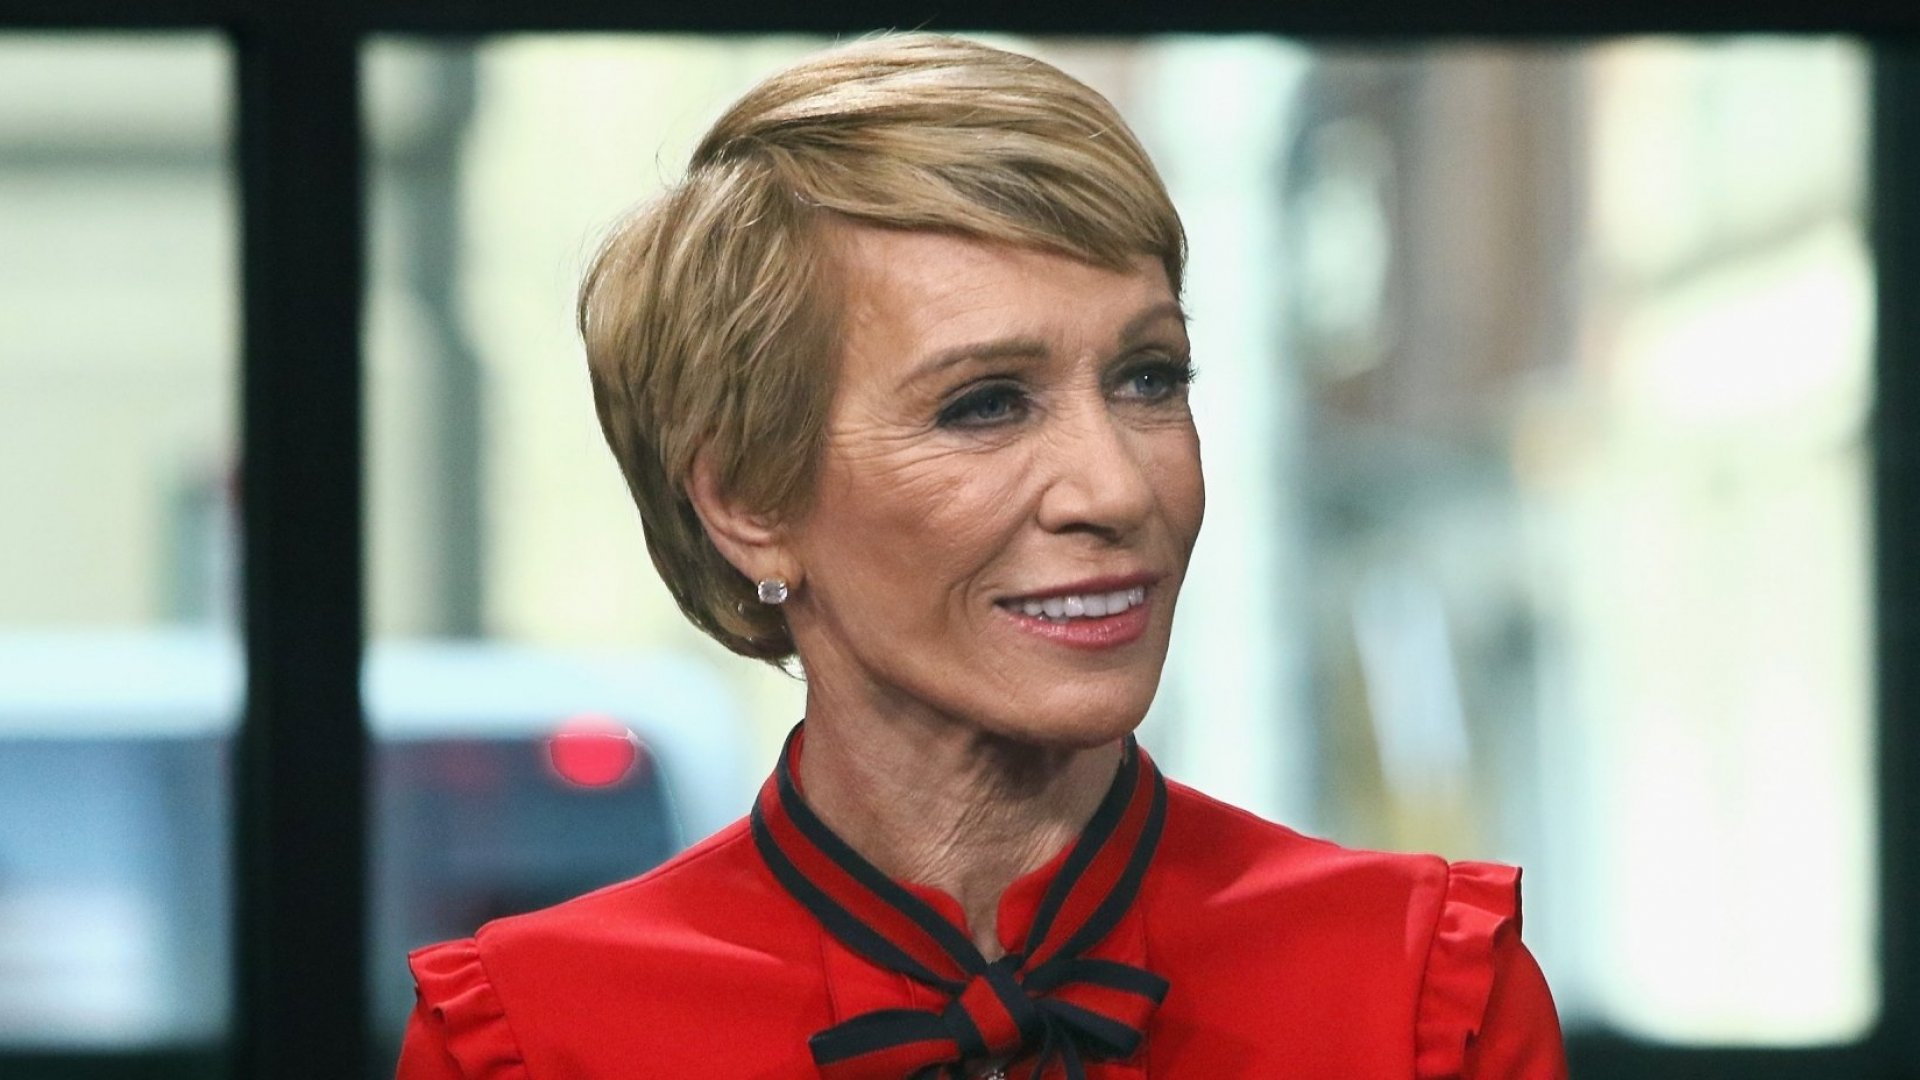 The Best Investment to Make By Age 30, According to Barbara Corcoran (It's Not Real Estate)